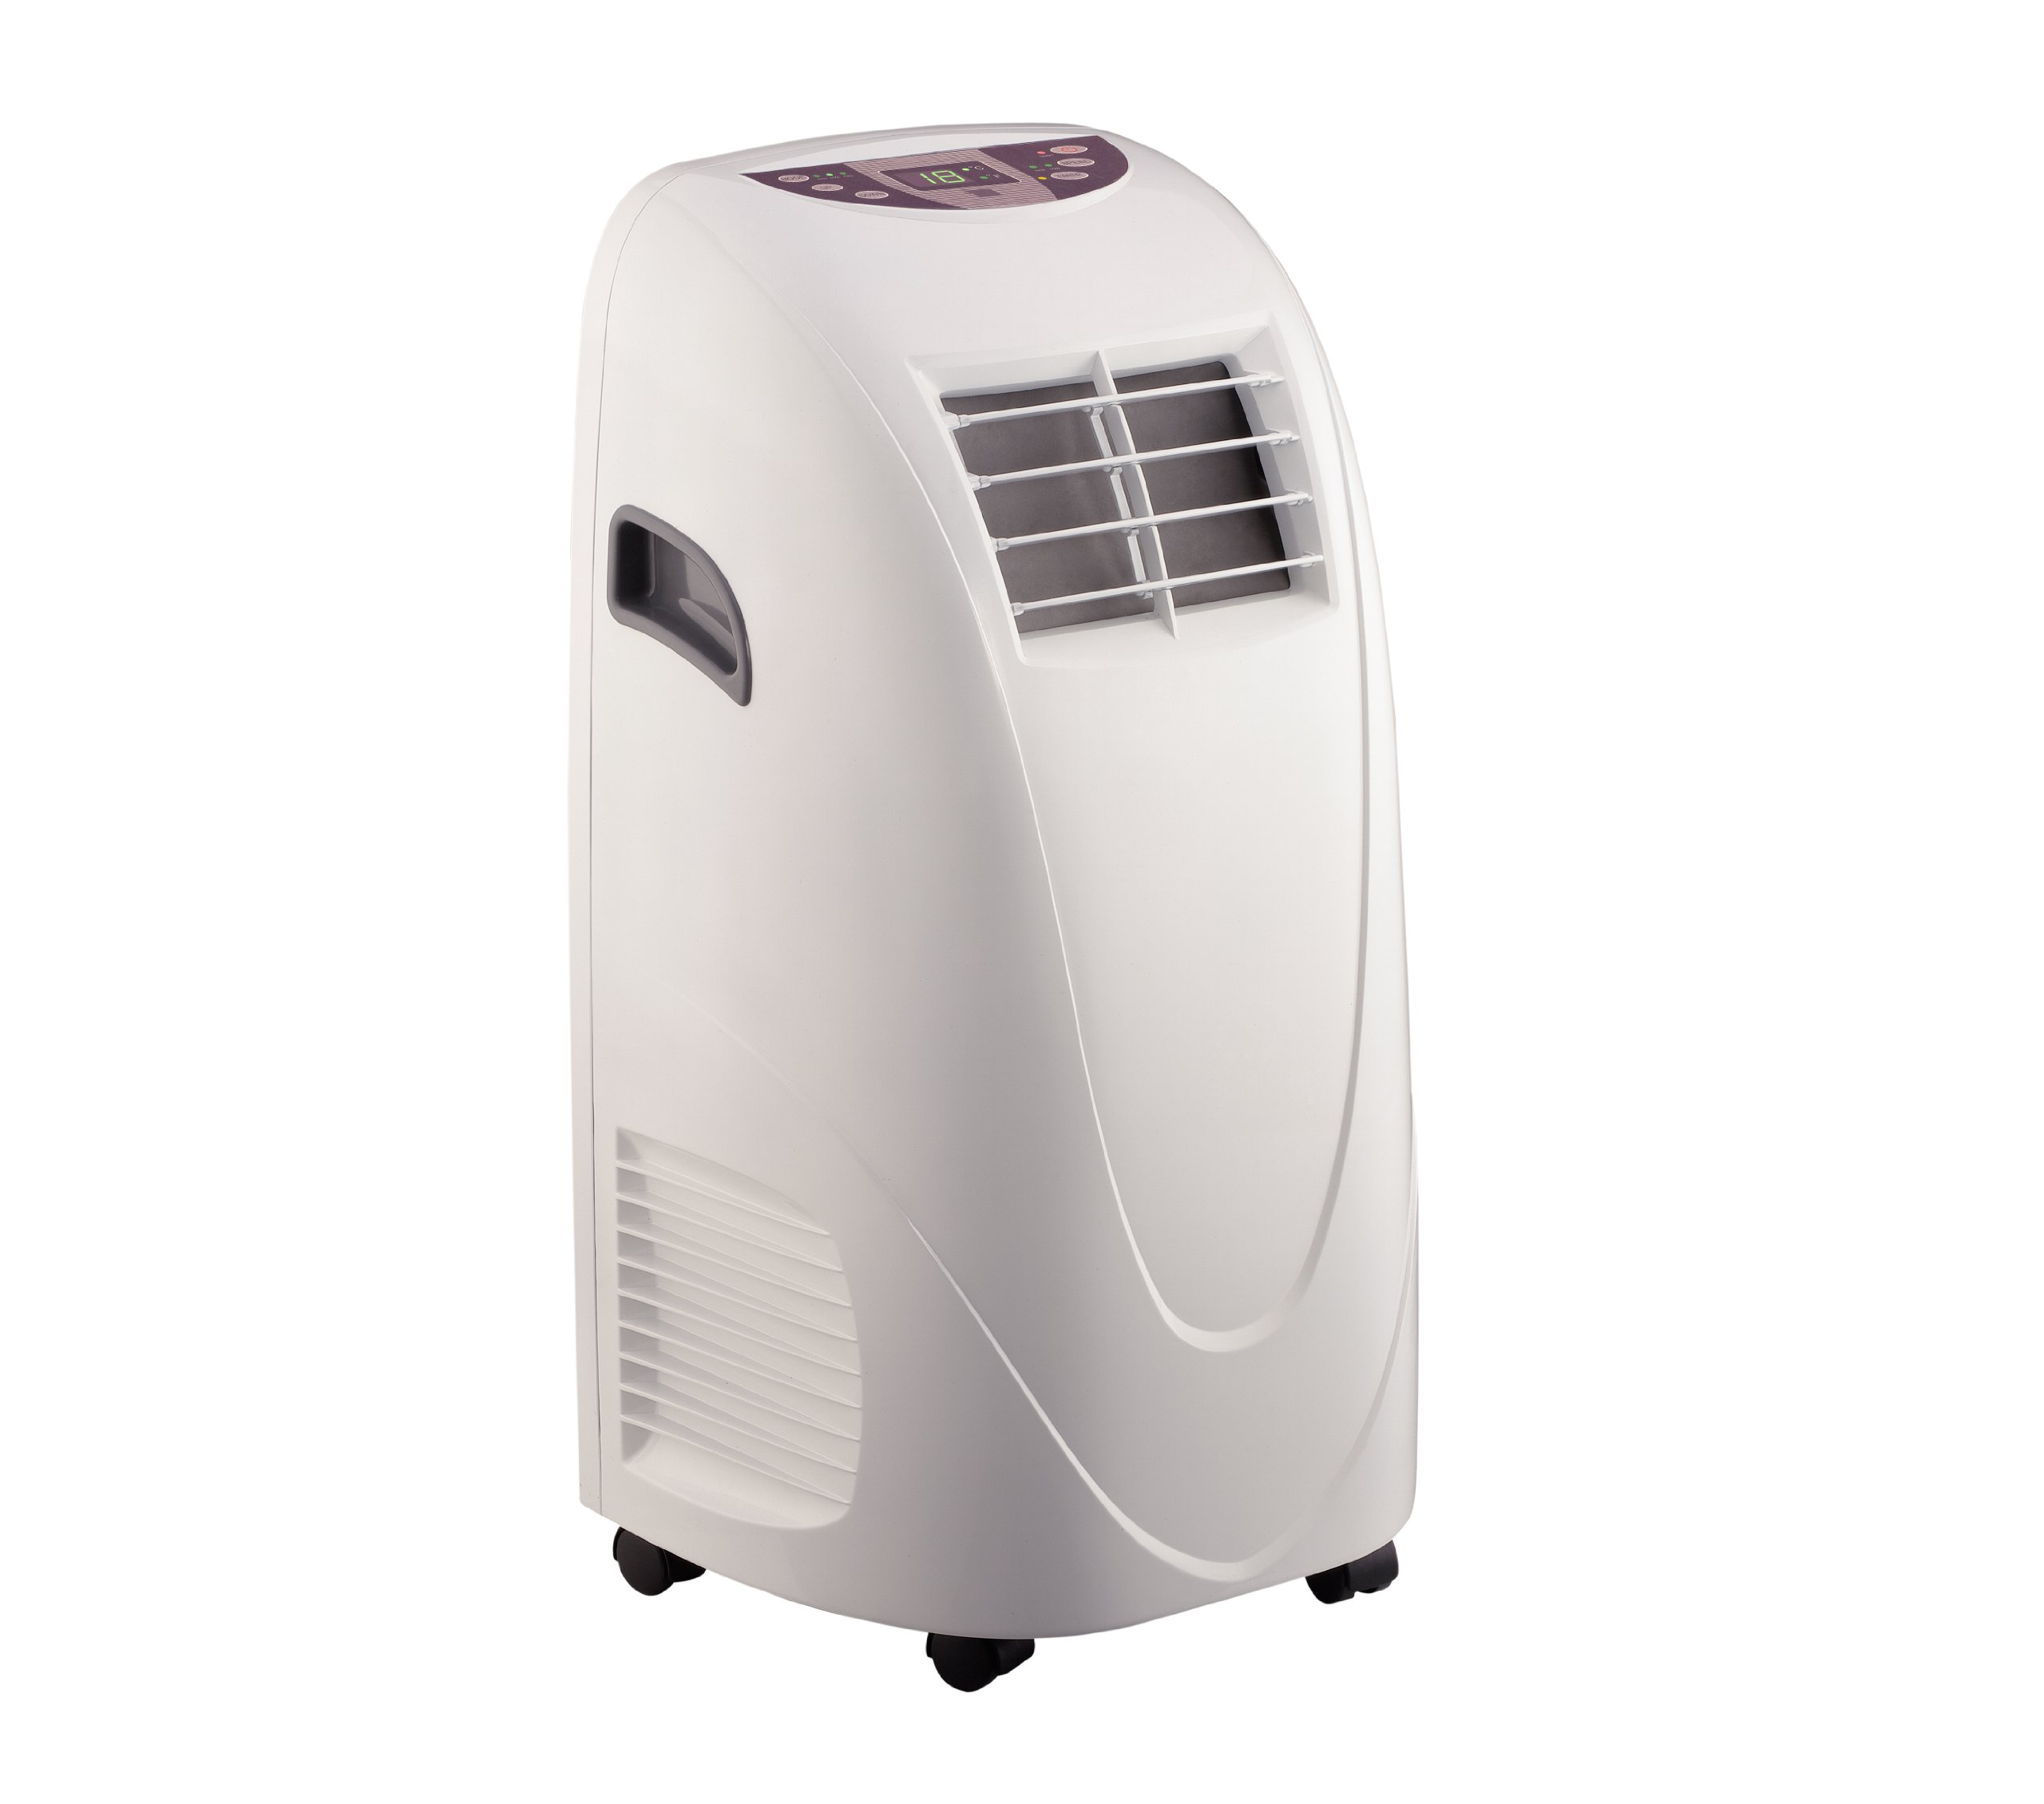 Global Air 10,000 BTU Portable Air Conditioner Cooling /Fan with Remote Control in White by Global Air Conditioning